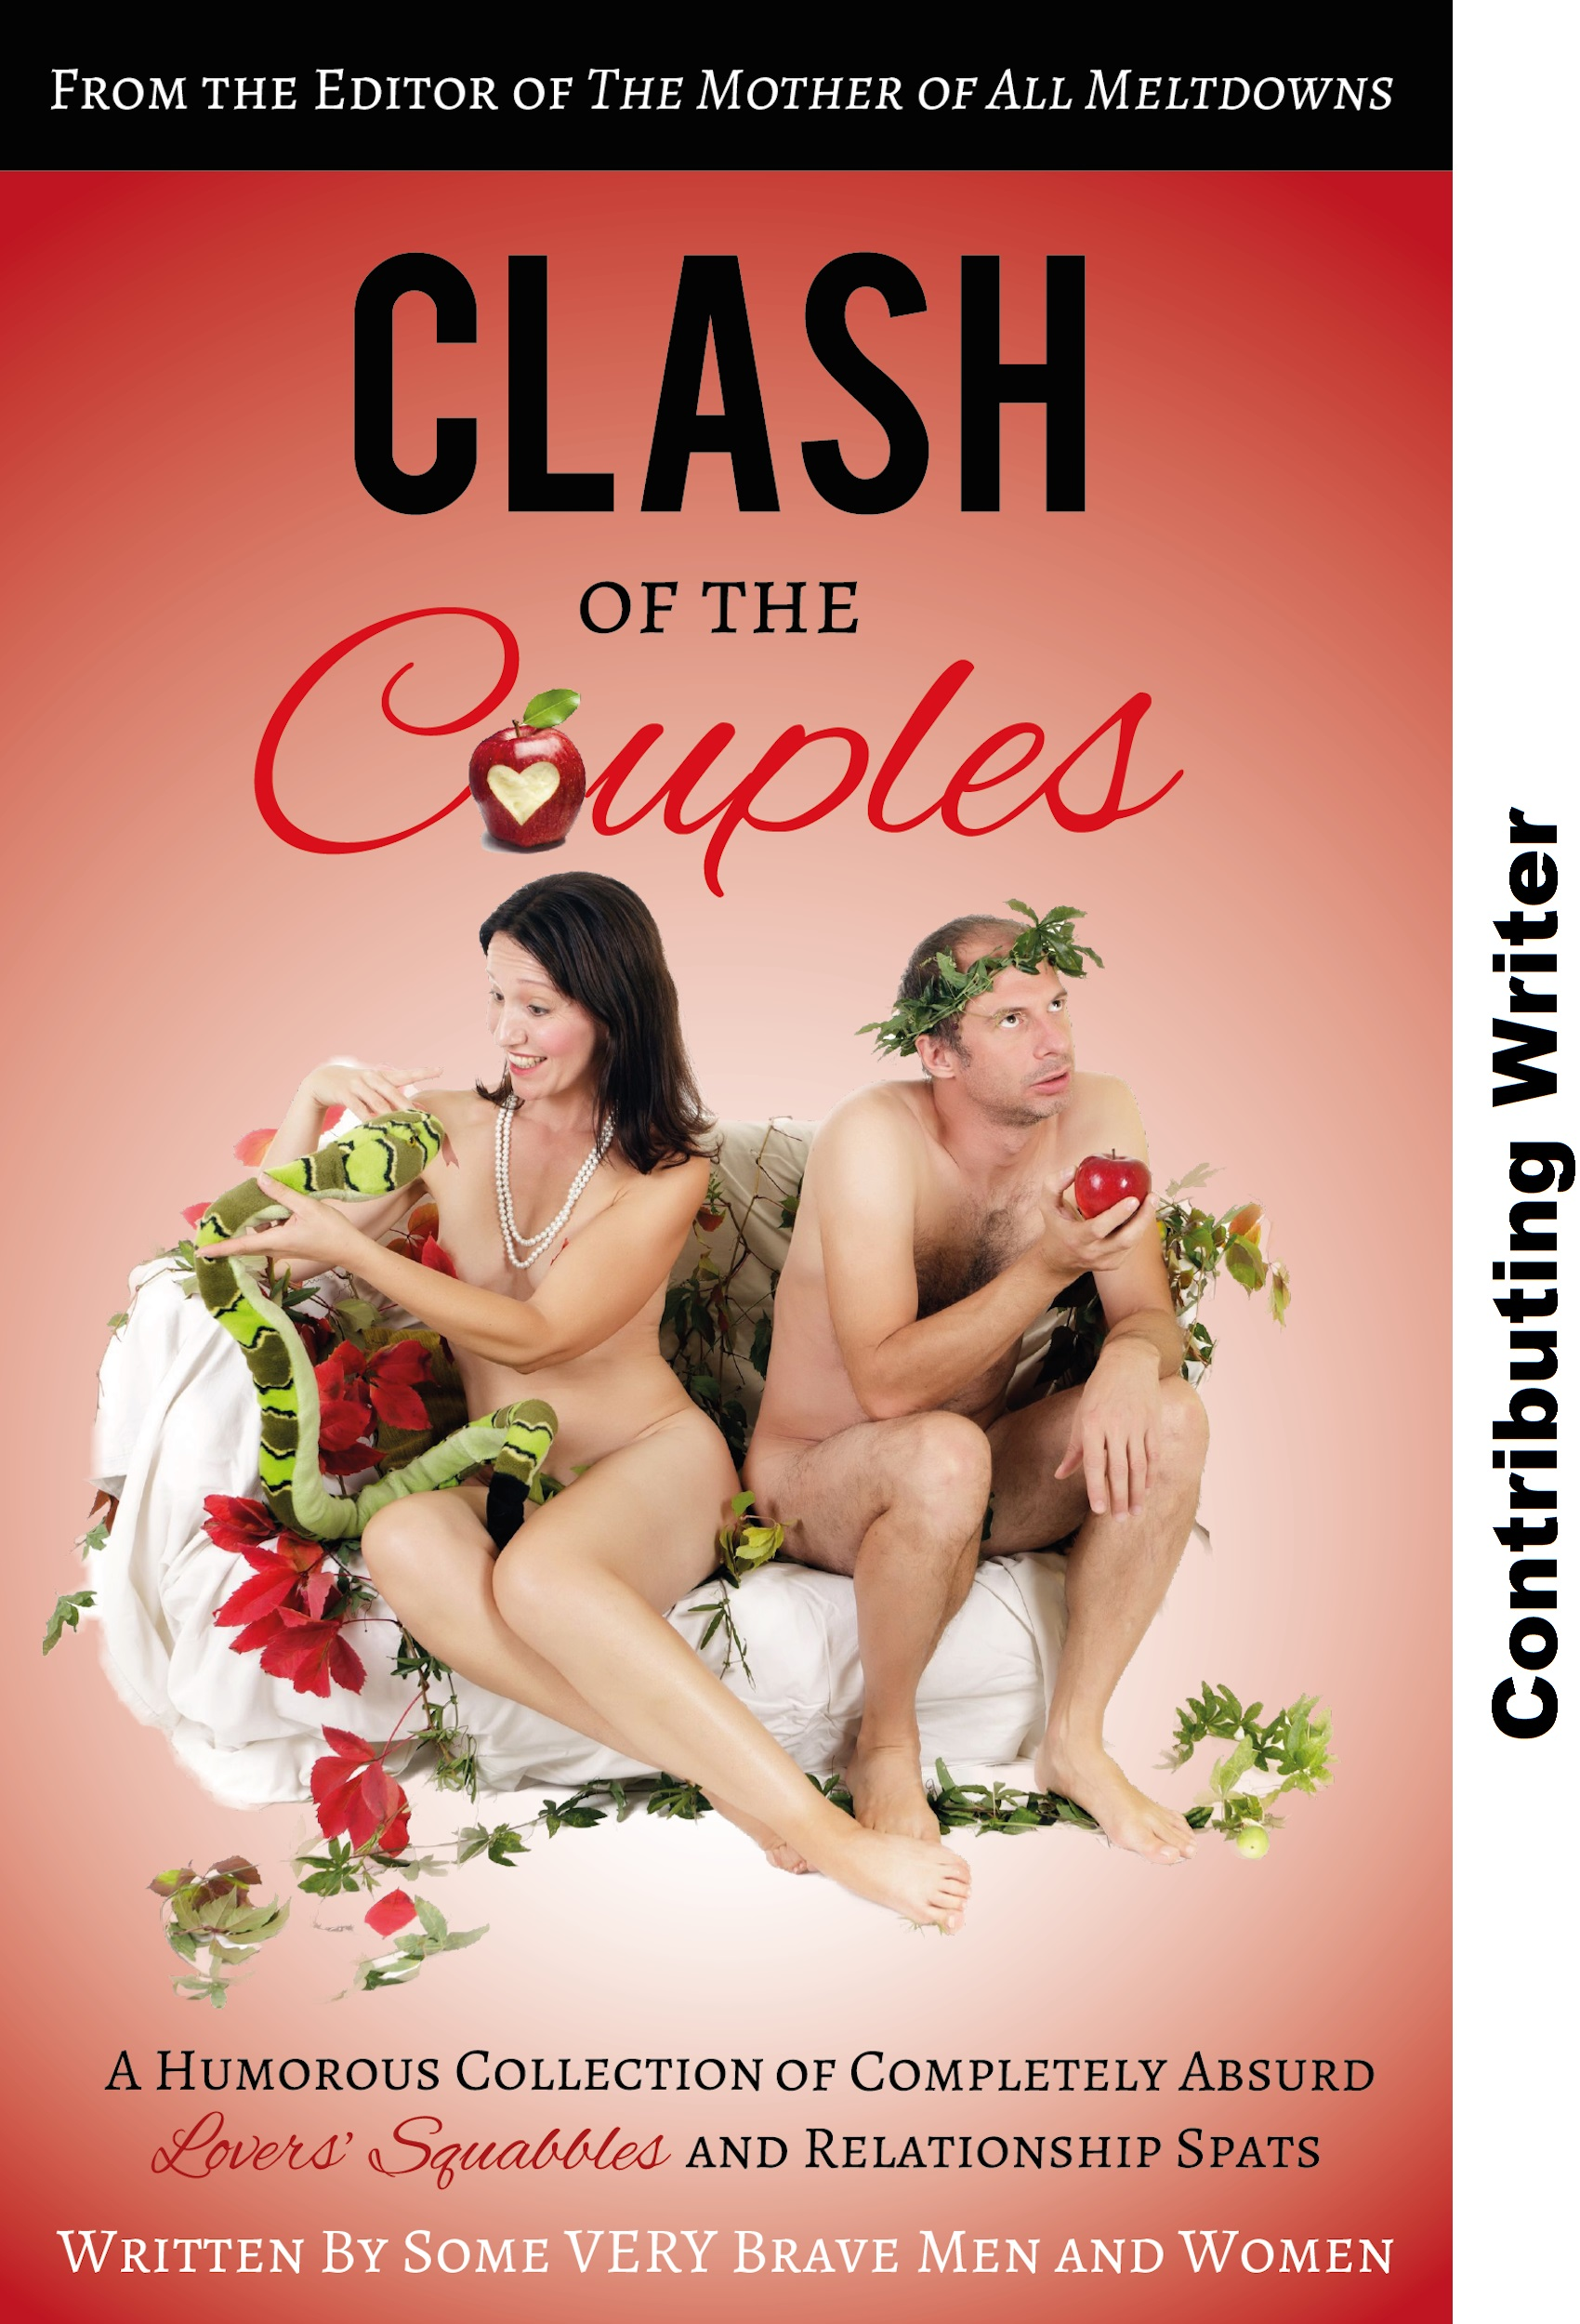 Clash of the Couples2-01